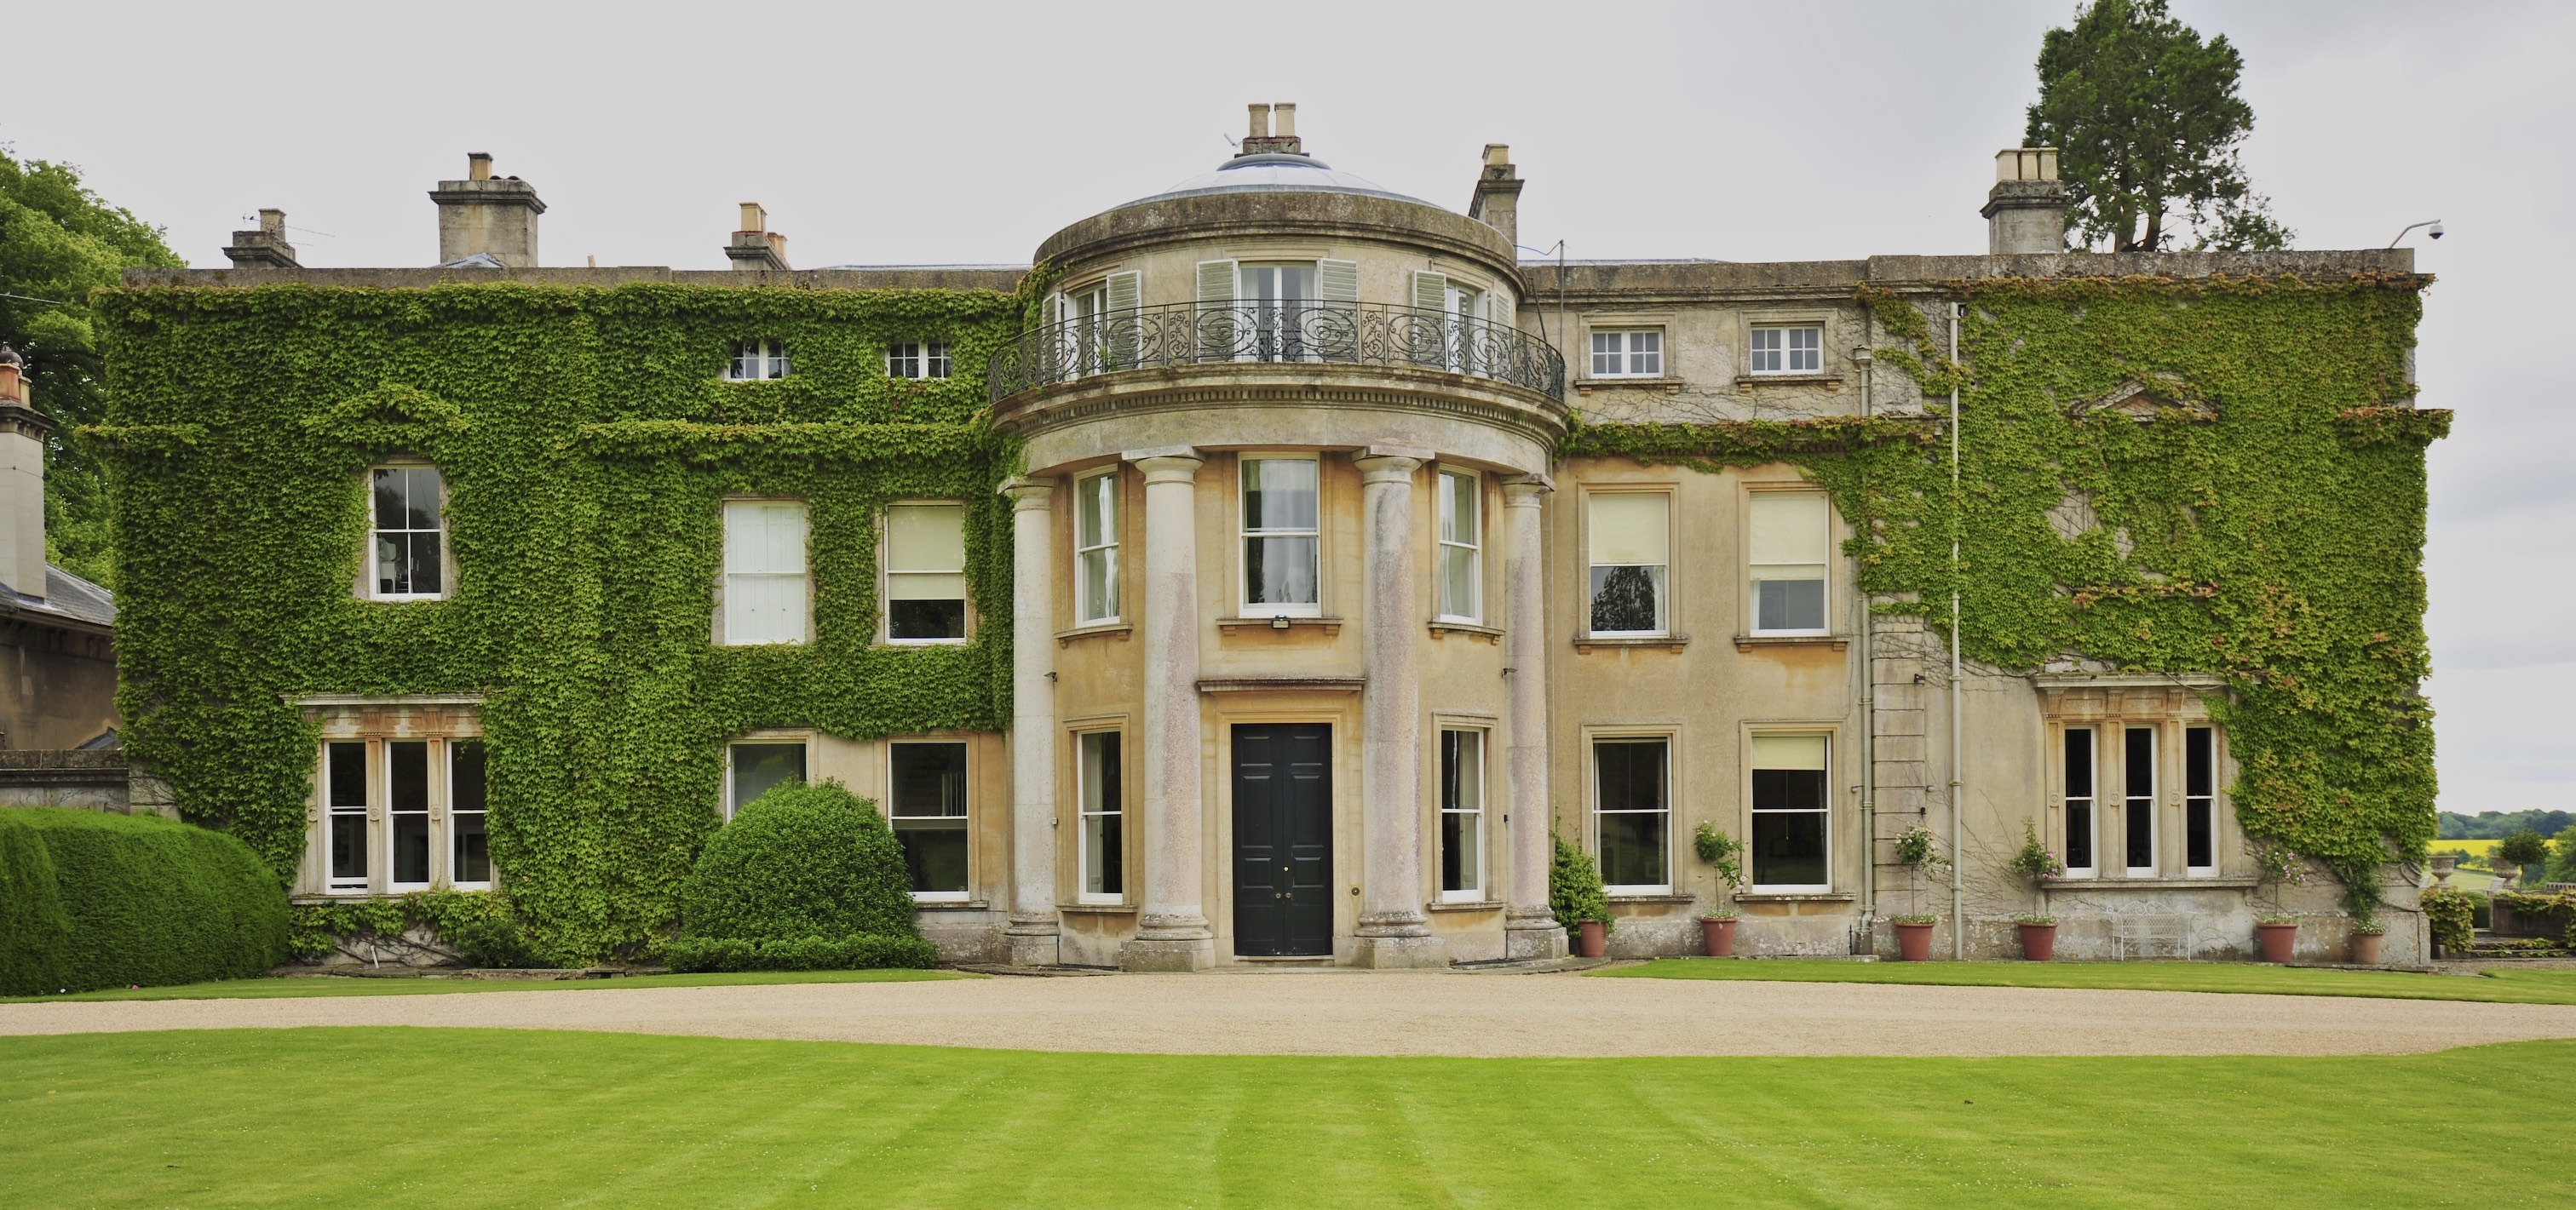 Woolley Estate - Private Wedding Venue hire based in Oxfordshire